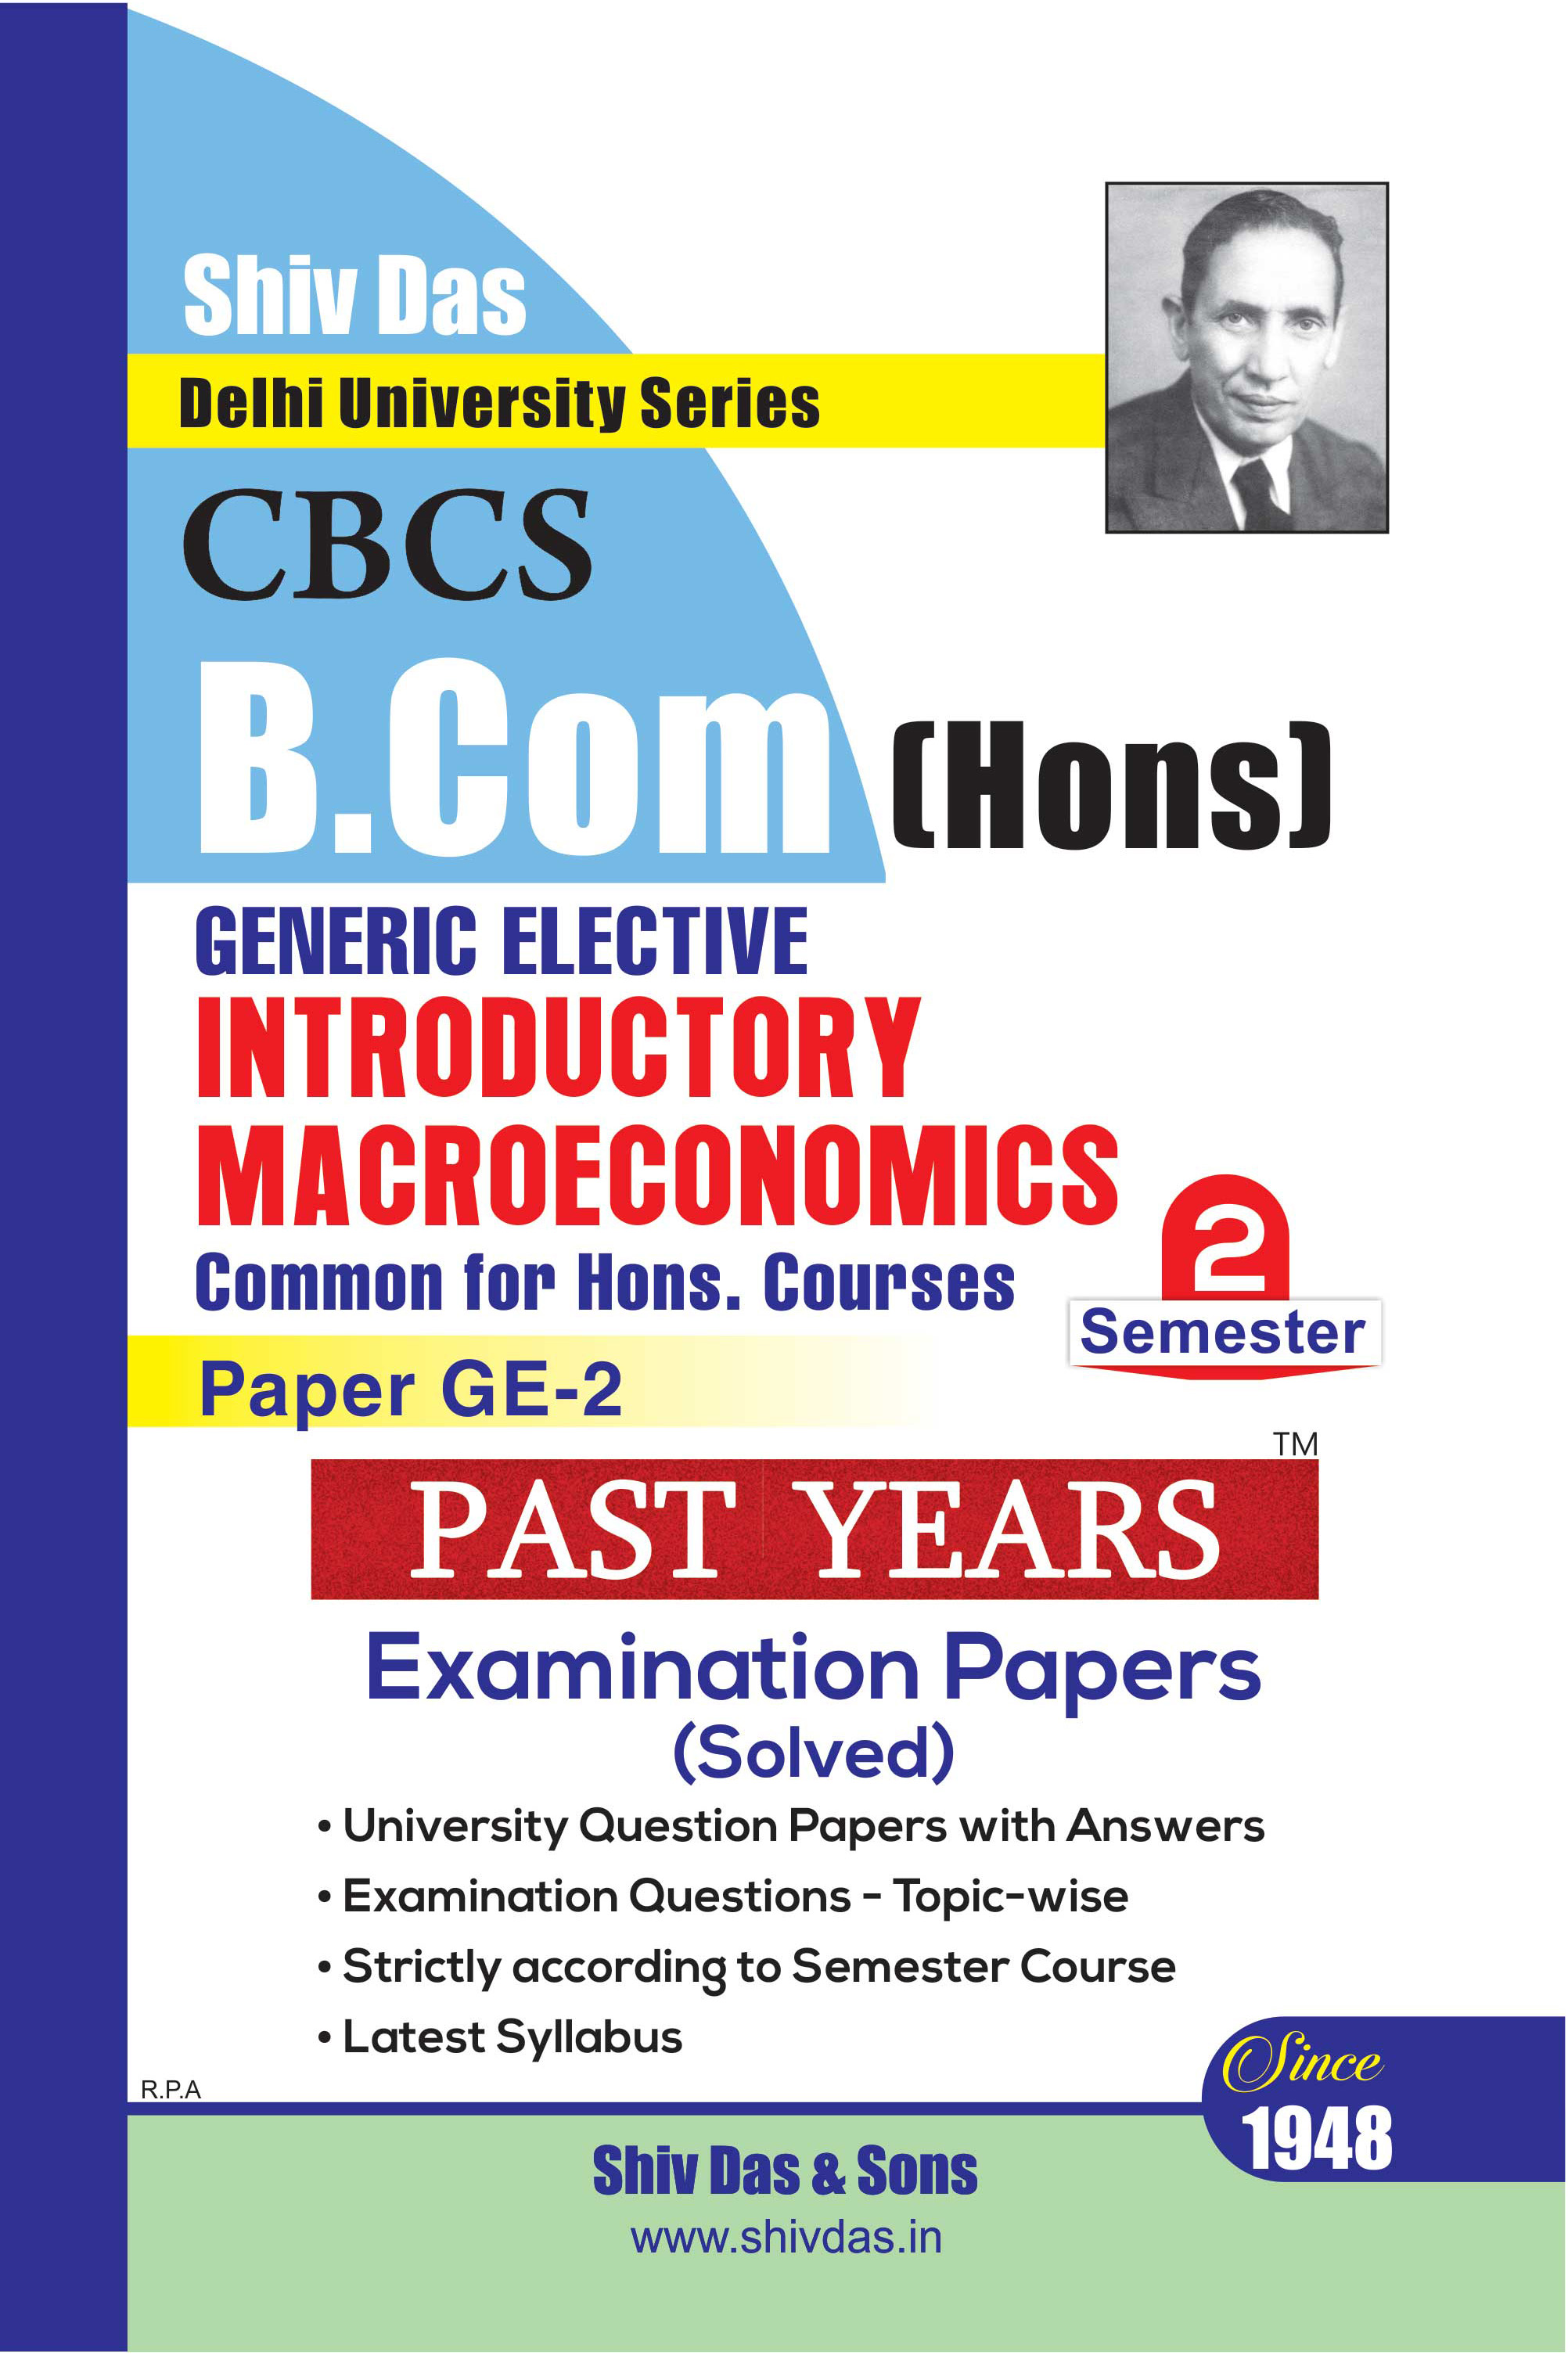 Introductory Macroeconomics for B.Com Hons Semester - 2 for Delhi University by Shiv Das